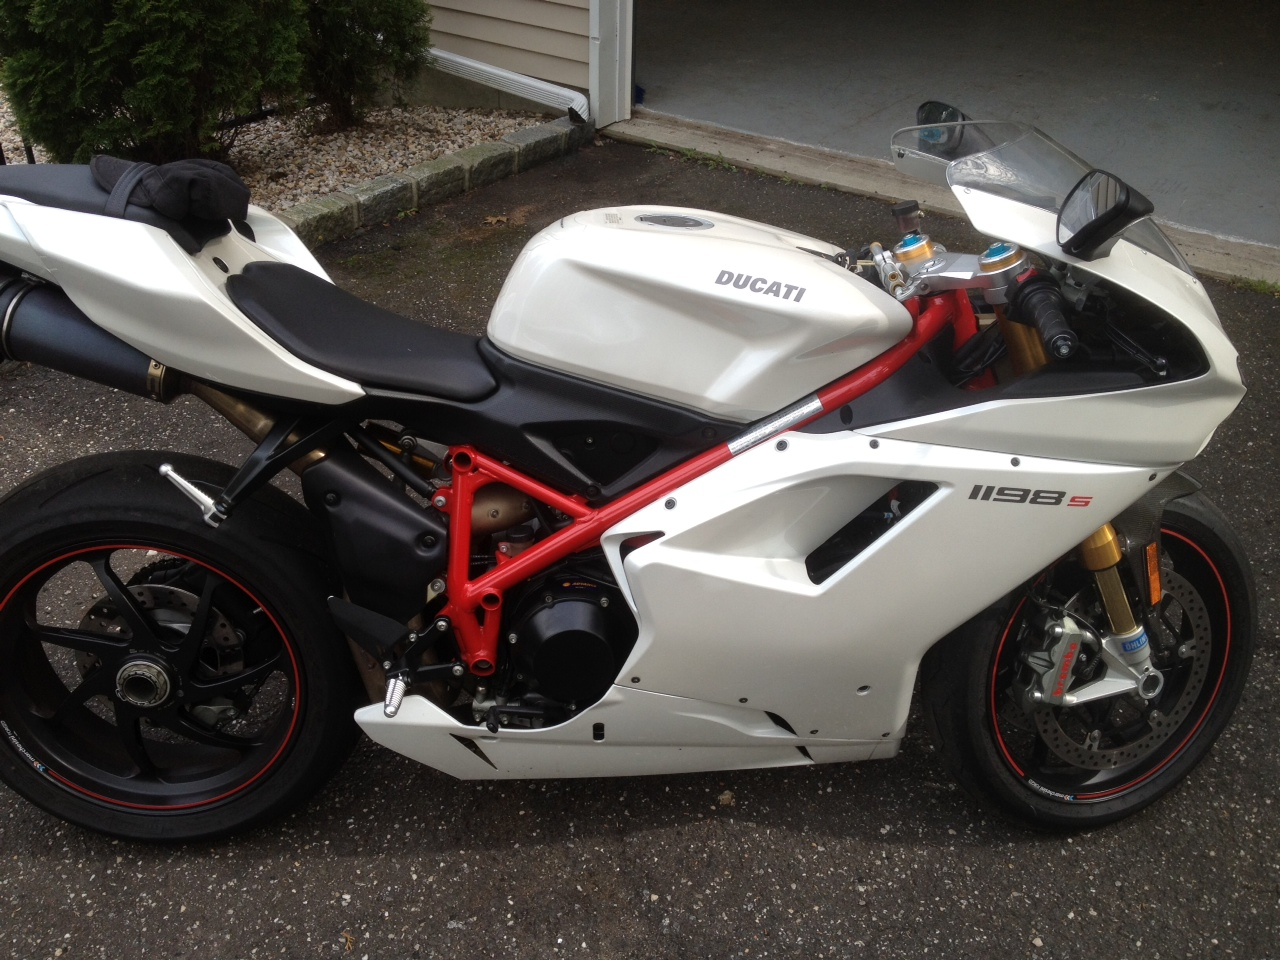 for sale: 2010 1198s white - ducati forum | the home for